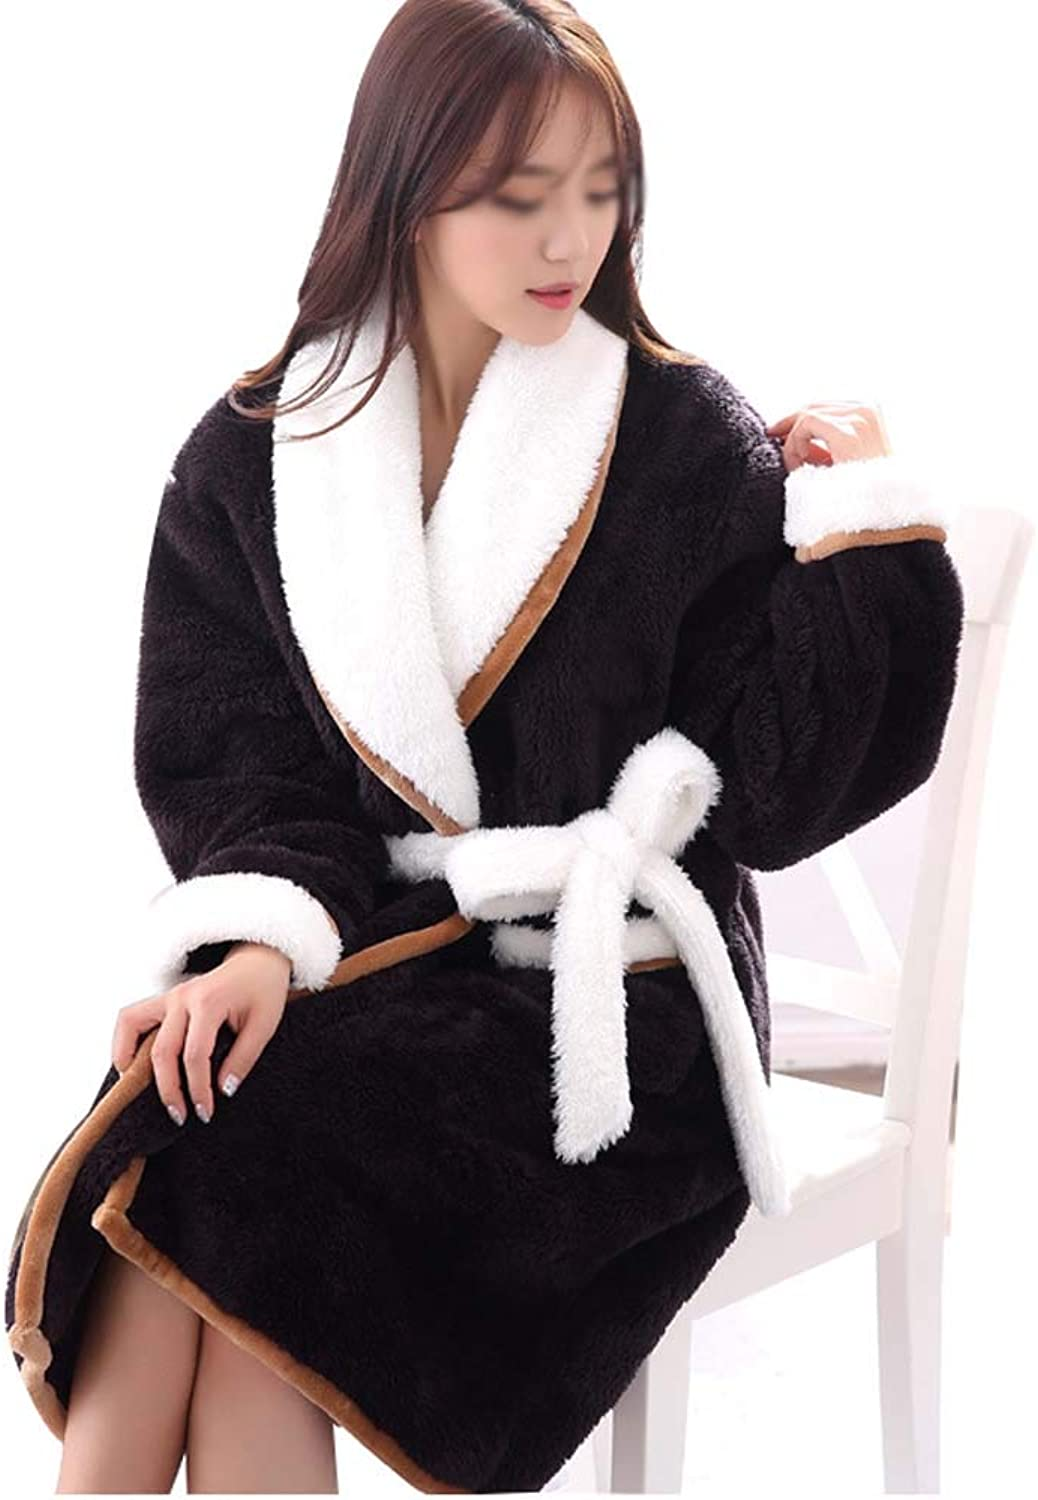 HONGLIAN Winter Yukata Warm Padded Bathrobe Coral Velvet Couple Pajamas Long Sleeve Simple Fashion Black Brown Dressing Gown HONGLIAN (color   Male, Size   L)